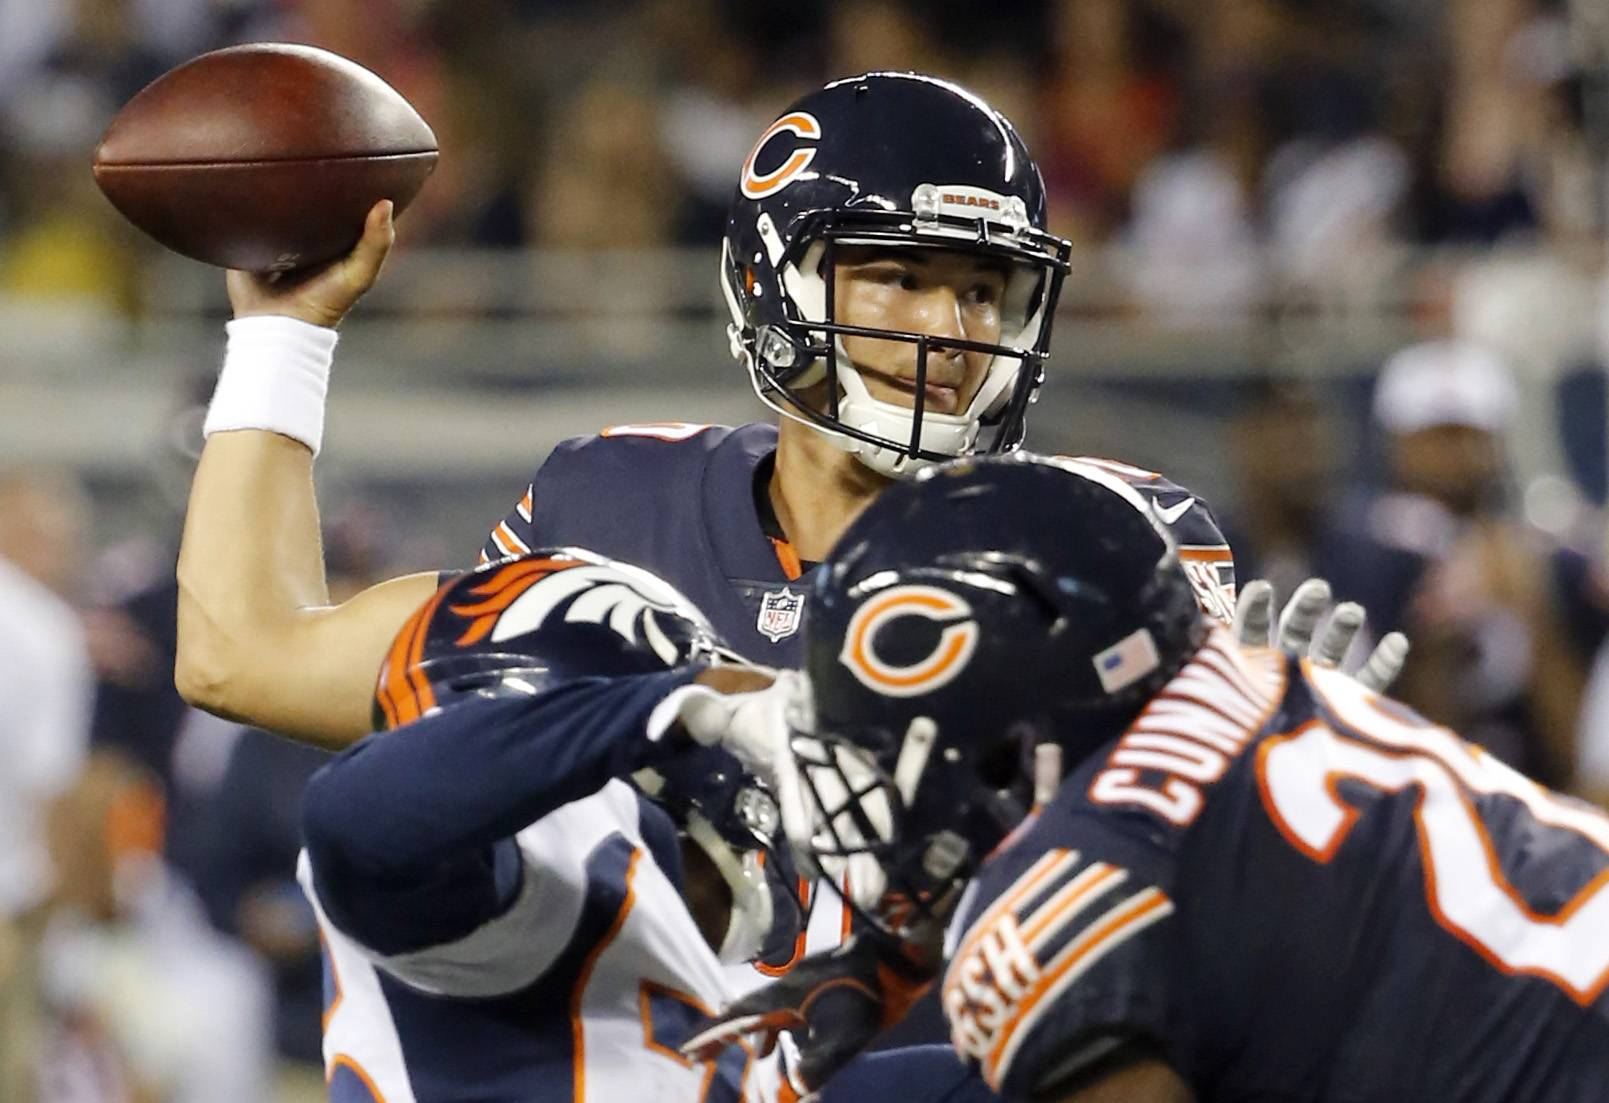 Chicago Bears quarterback Mitchell Trubisky (10) throws a pass during the first half of an NFL preseason football game against the Denver Broncos, Thursday, Aug. 10, 2017, in Chicago.